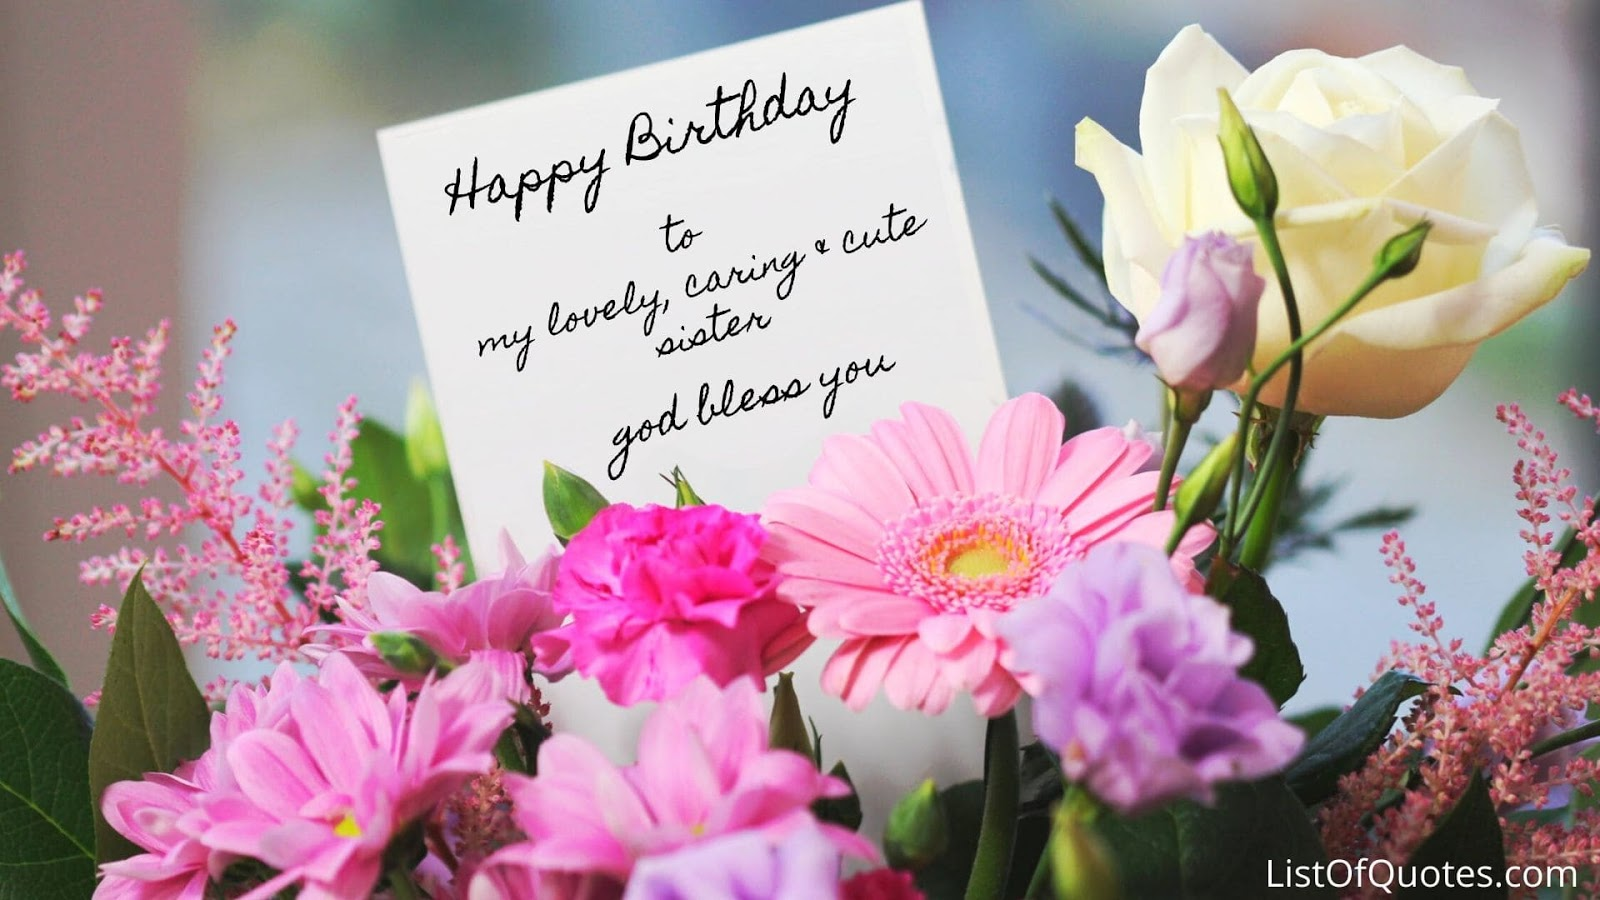 Happy Birthday Quotation Messages For Sister